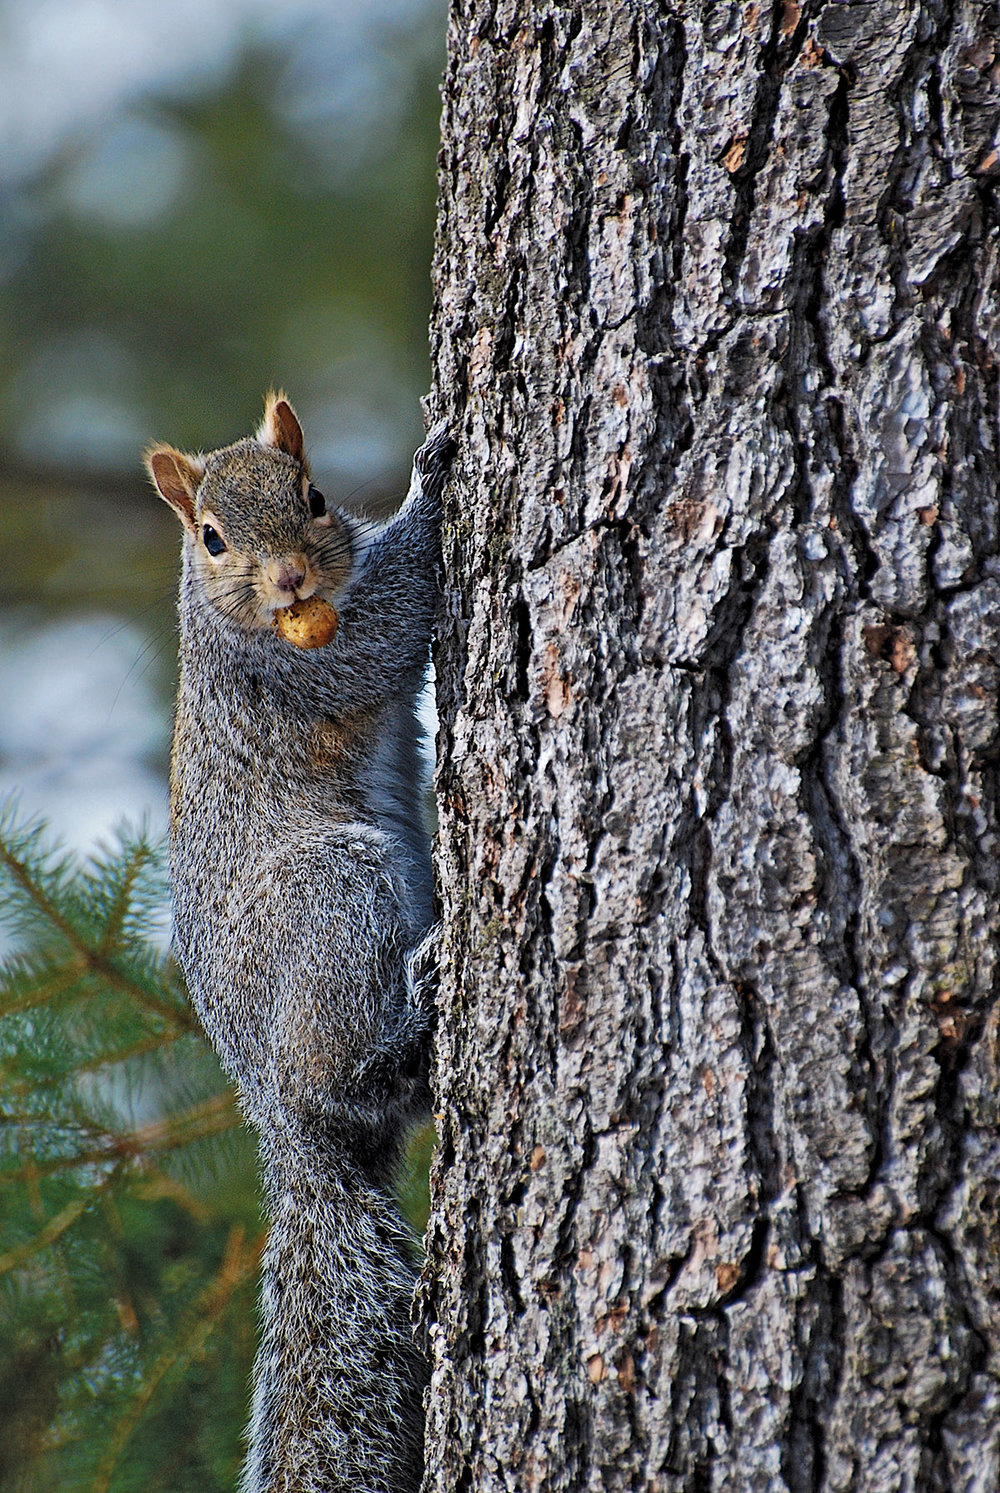 The Eastern Gray Squirrel is by far the noisiest creature in the otherwise tranquil winter forests of Hastings County.